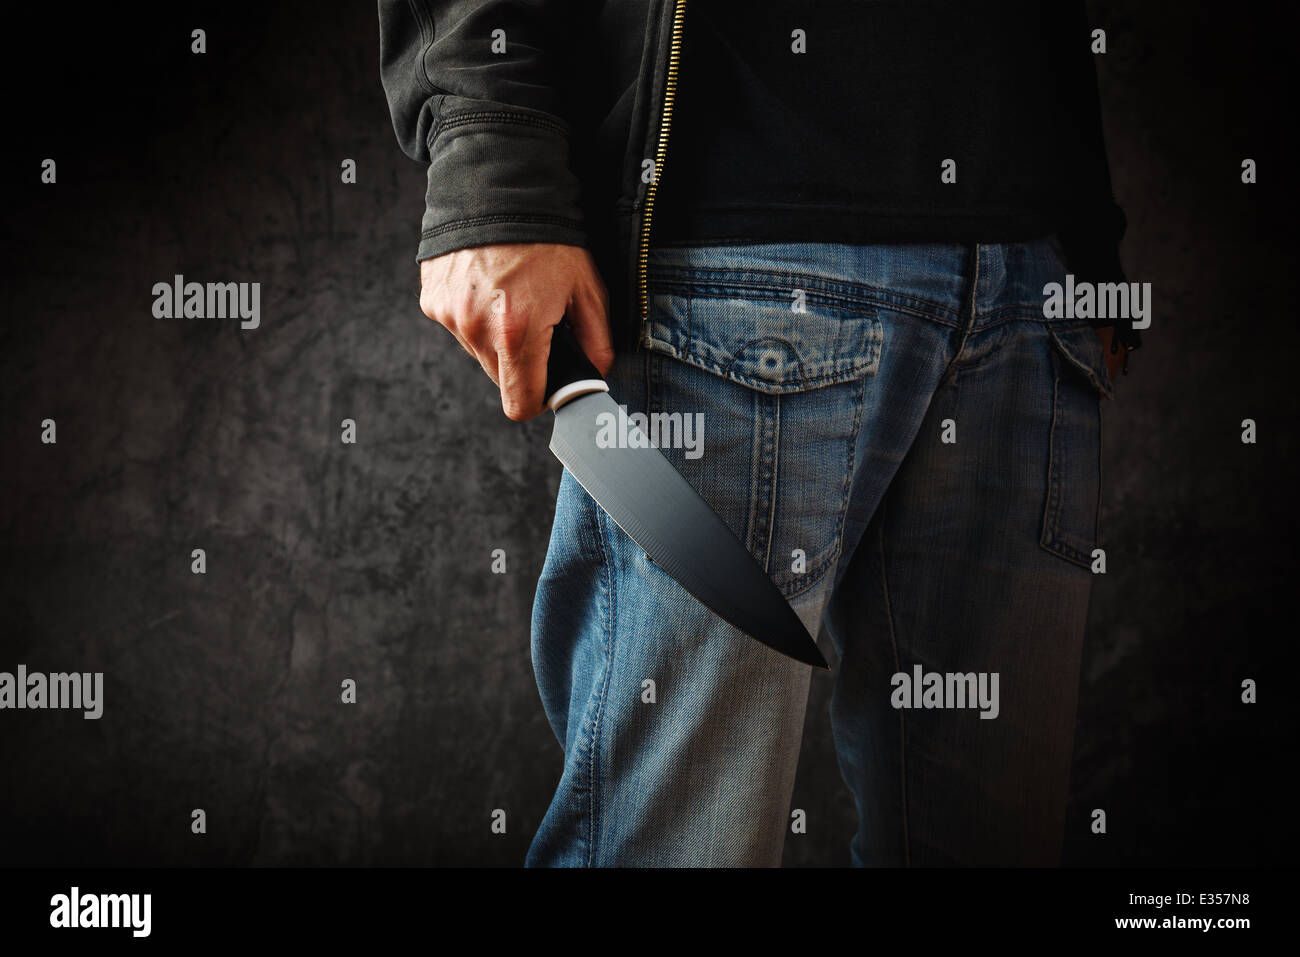 Evil man with shiny knife - a killer person with sharp knife about to commit a homicide, murder scenery. - Stock Image